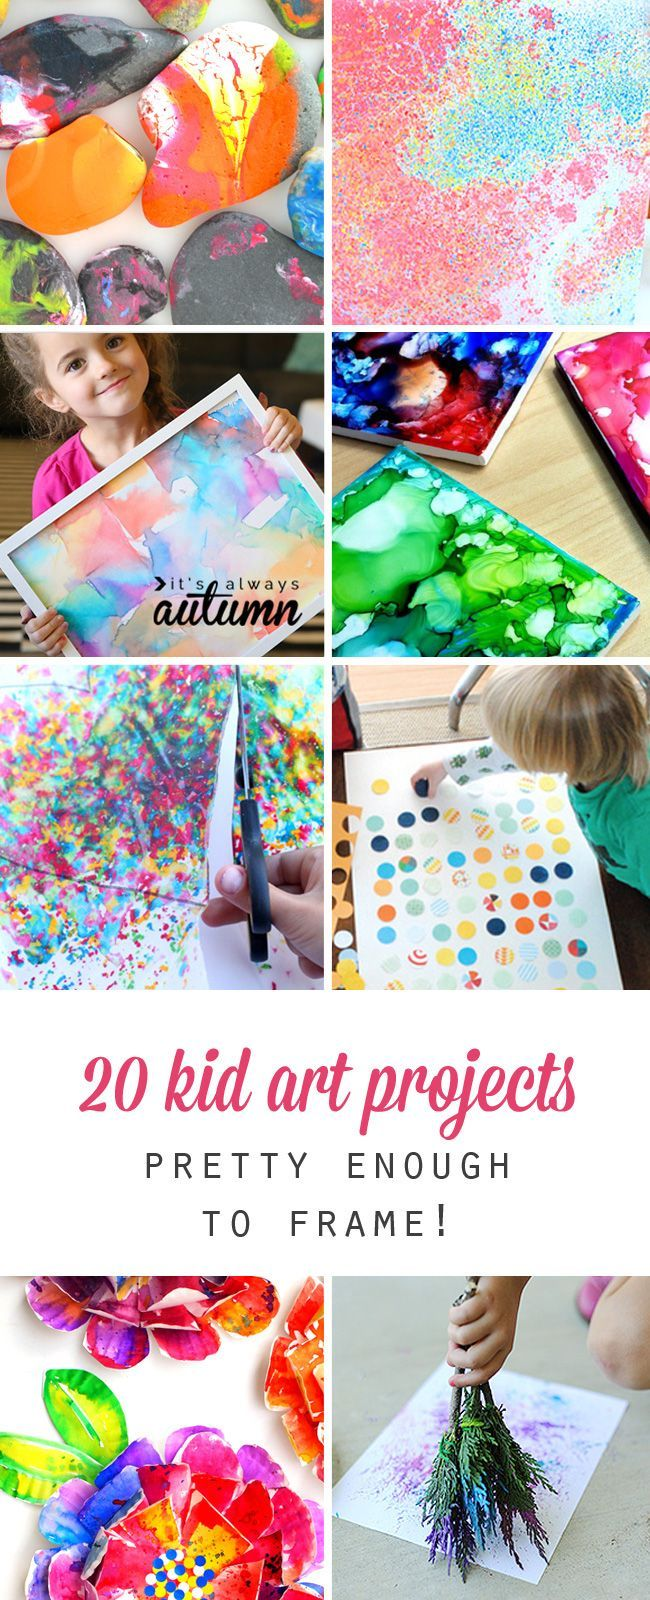 Unique Craft Ideas For Kids Part - 23: 20 Kid Art Projects Pretty Enough To Frame